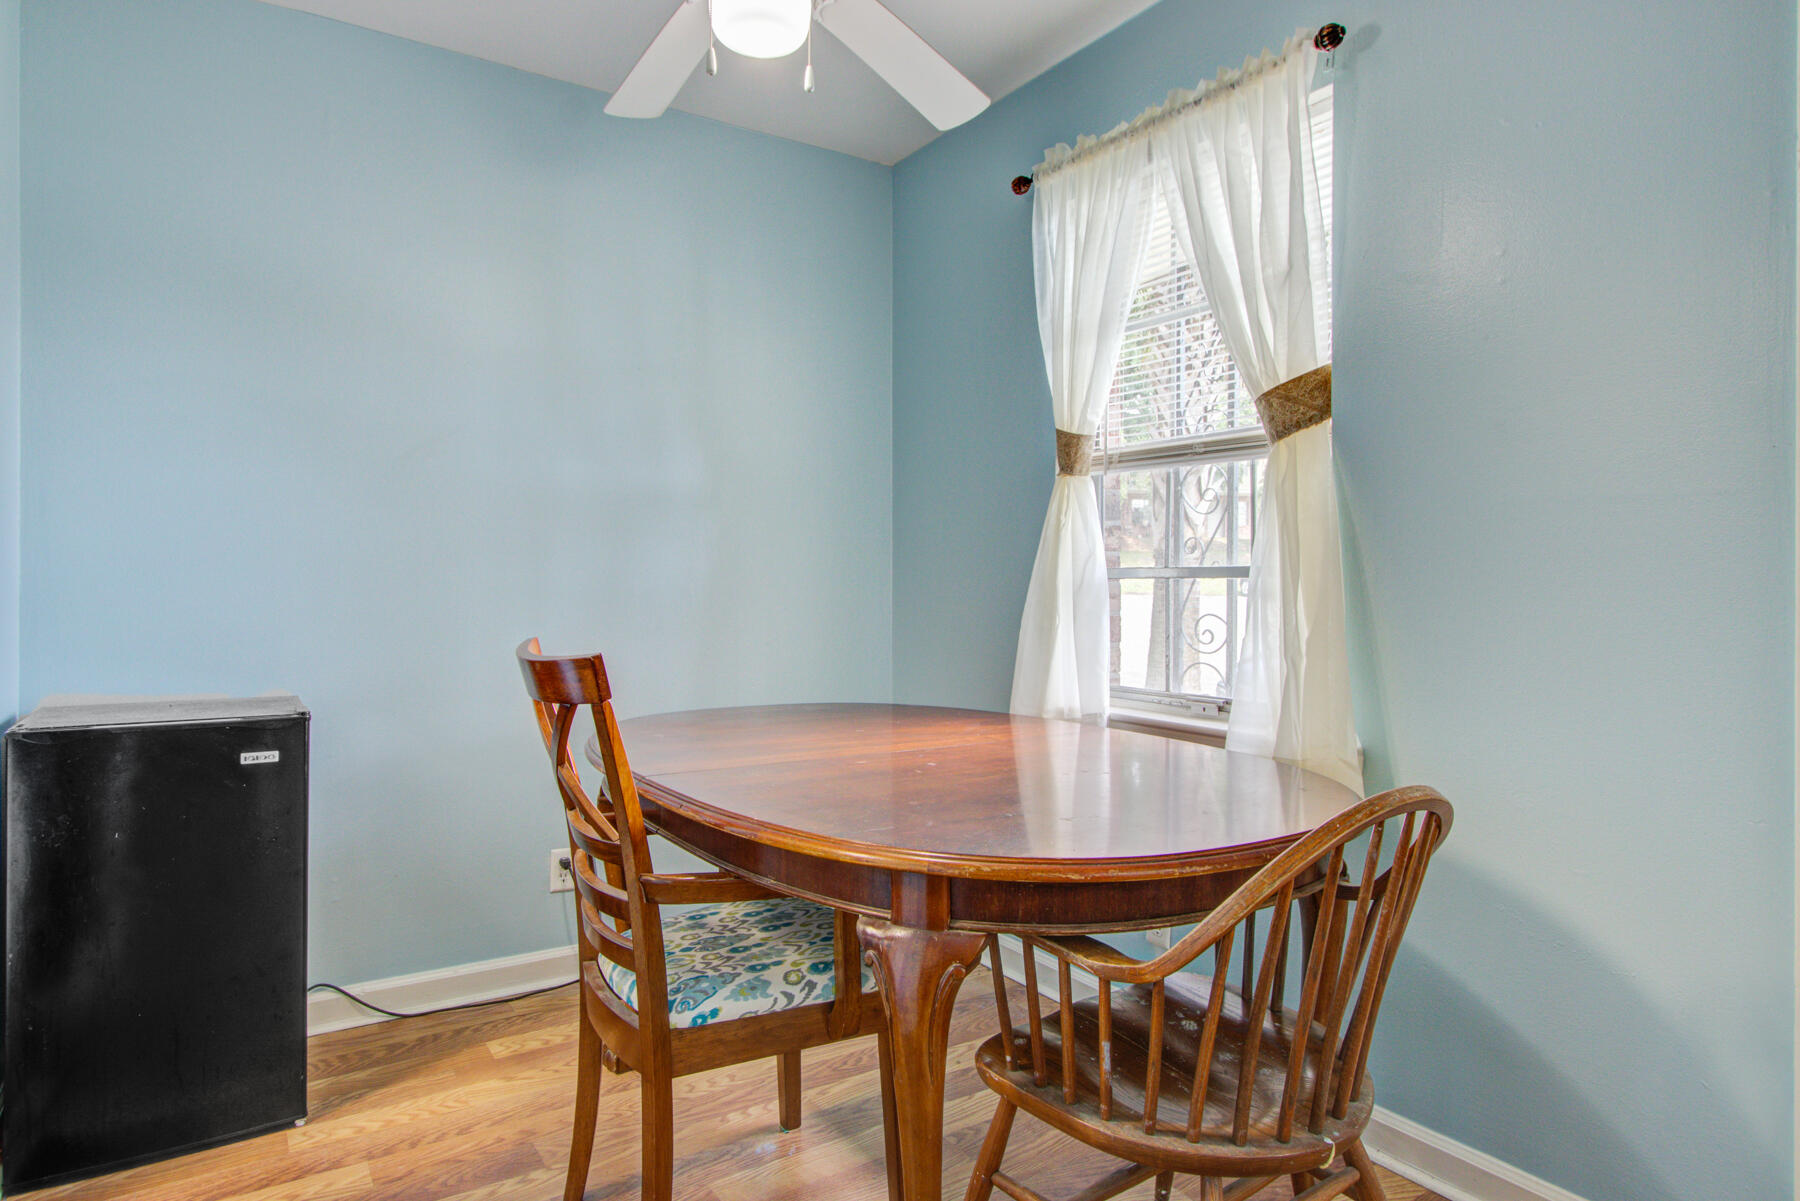 The Reserve at Old Point Homes For Sale - 6240 Old Point, Hanahan, SC - 11